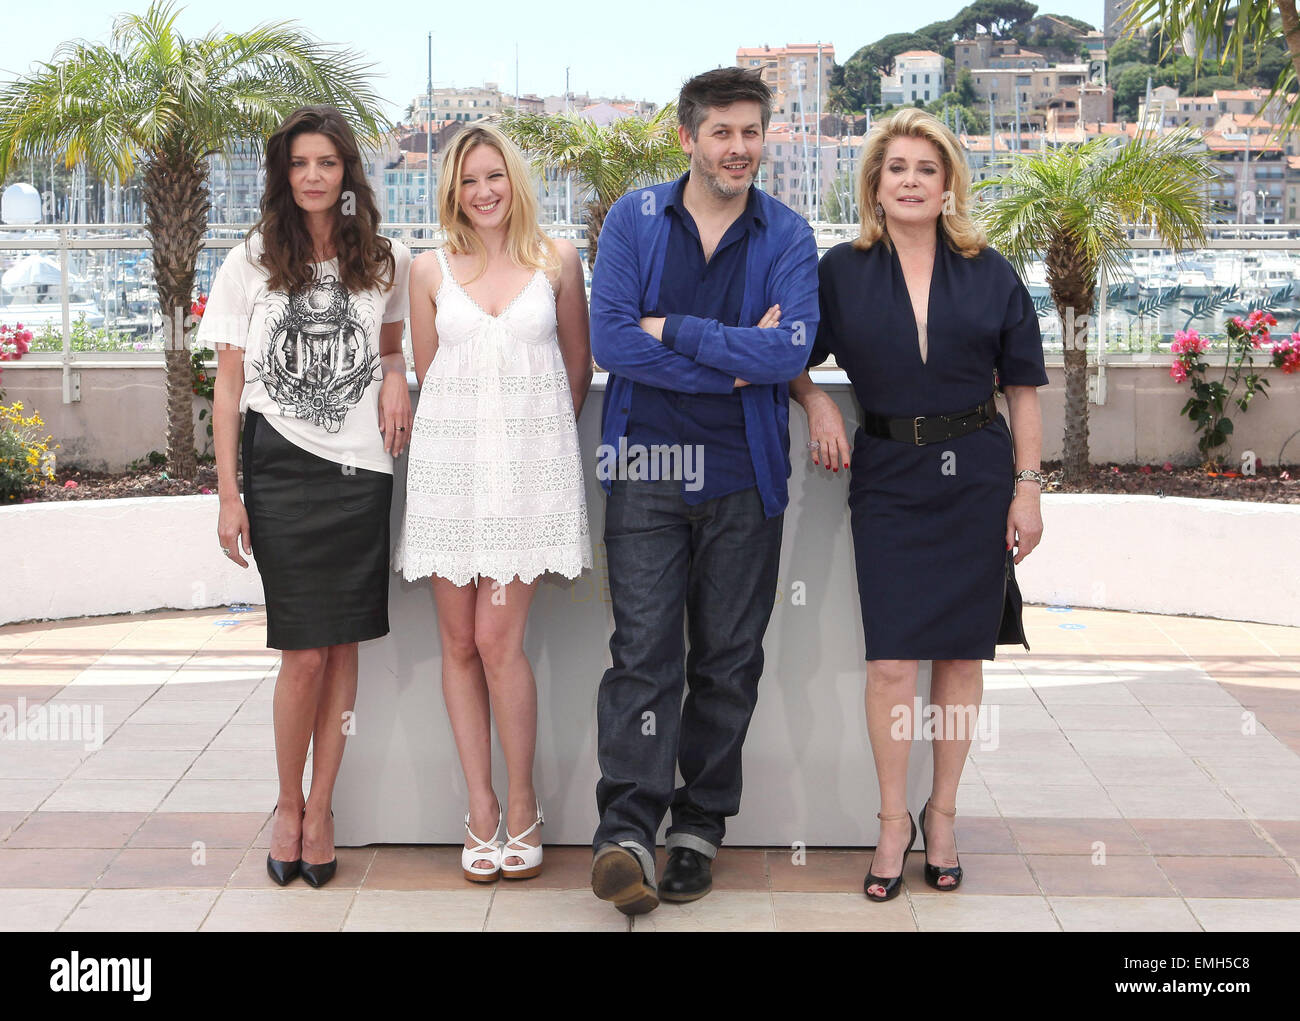 MAY.2011 CANNES CHIARA MASTROIANNI, LUDIVINE SAGNIER, CHRISTOPHE HONORE AND  CATHERINE DENEUVE AT THE PHOTOCALL FOR THE FILM LES BIEN AIMES AT THE 64TH  ...